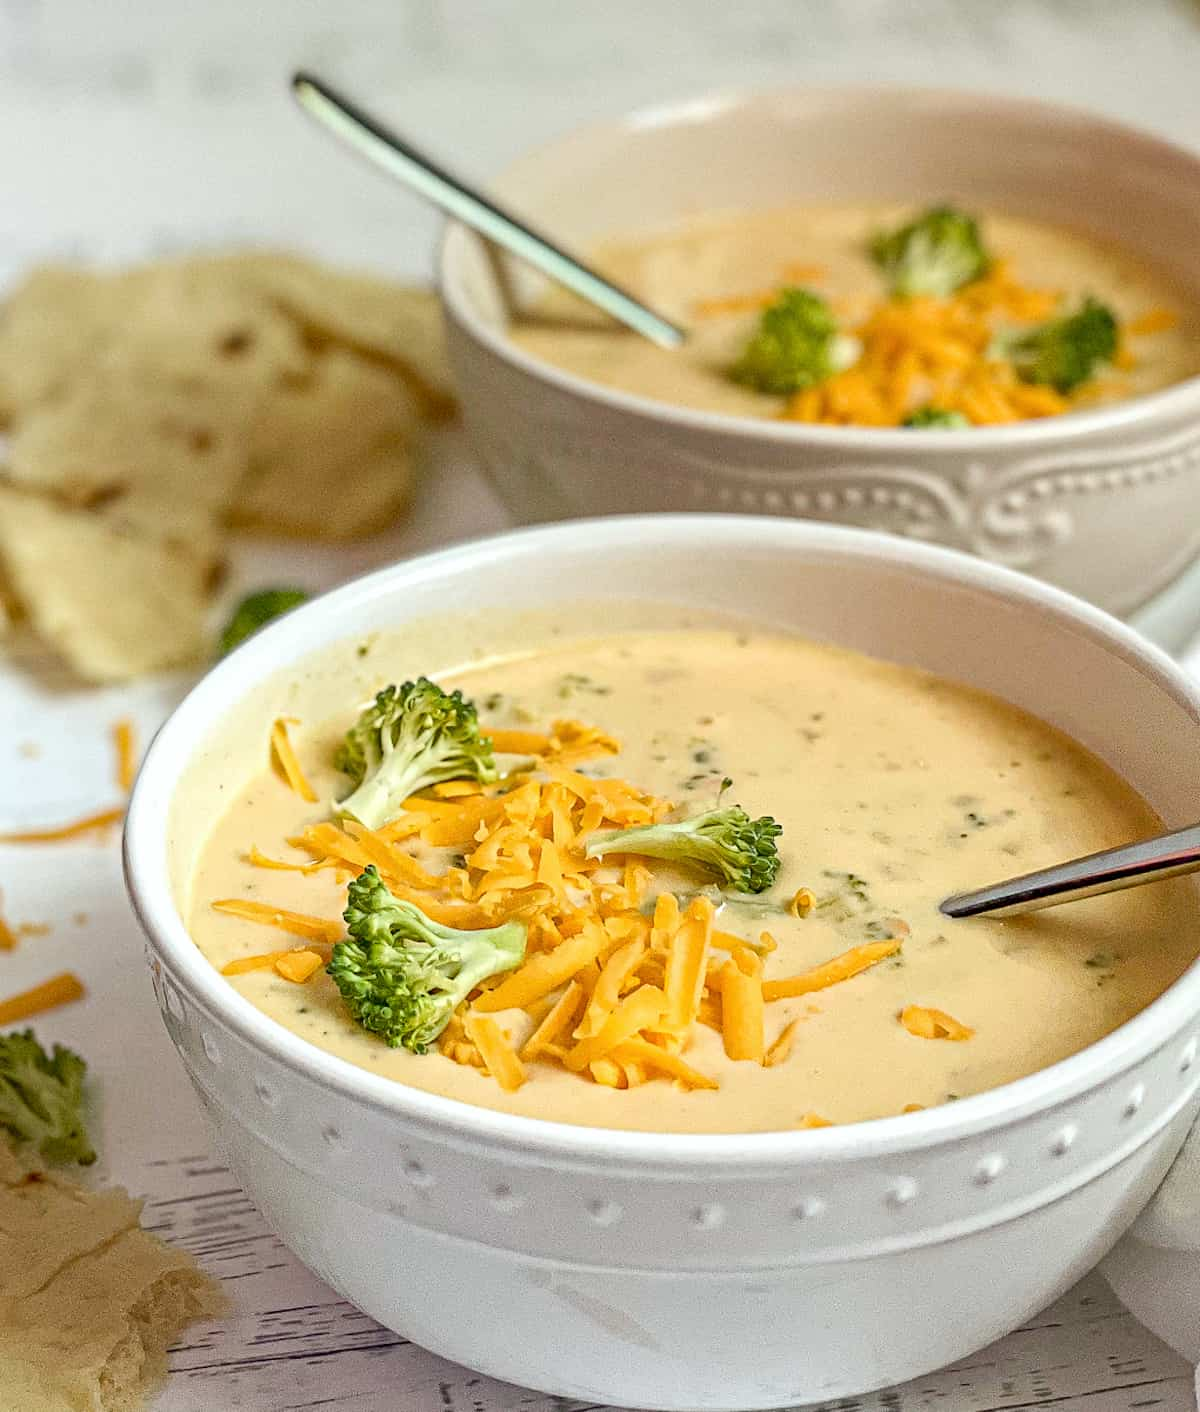 2 bowls of creamy instant pot broccoli cheddar soup, topped with extra broccoli and cheese